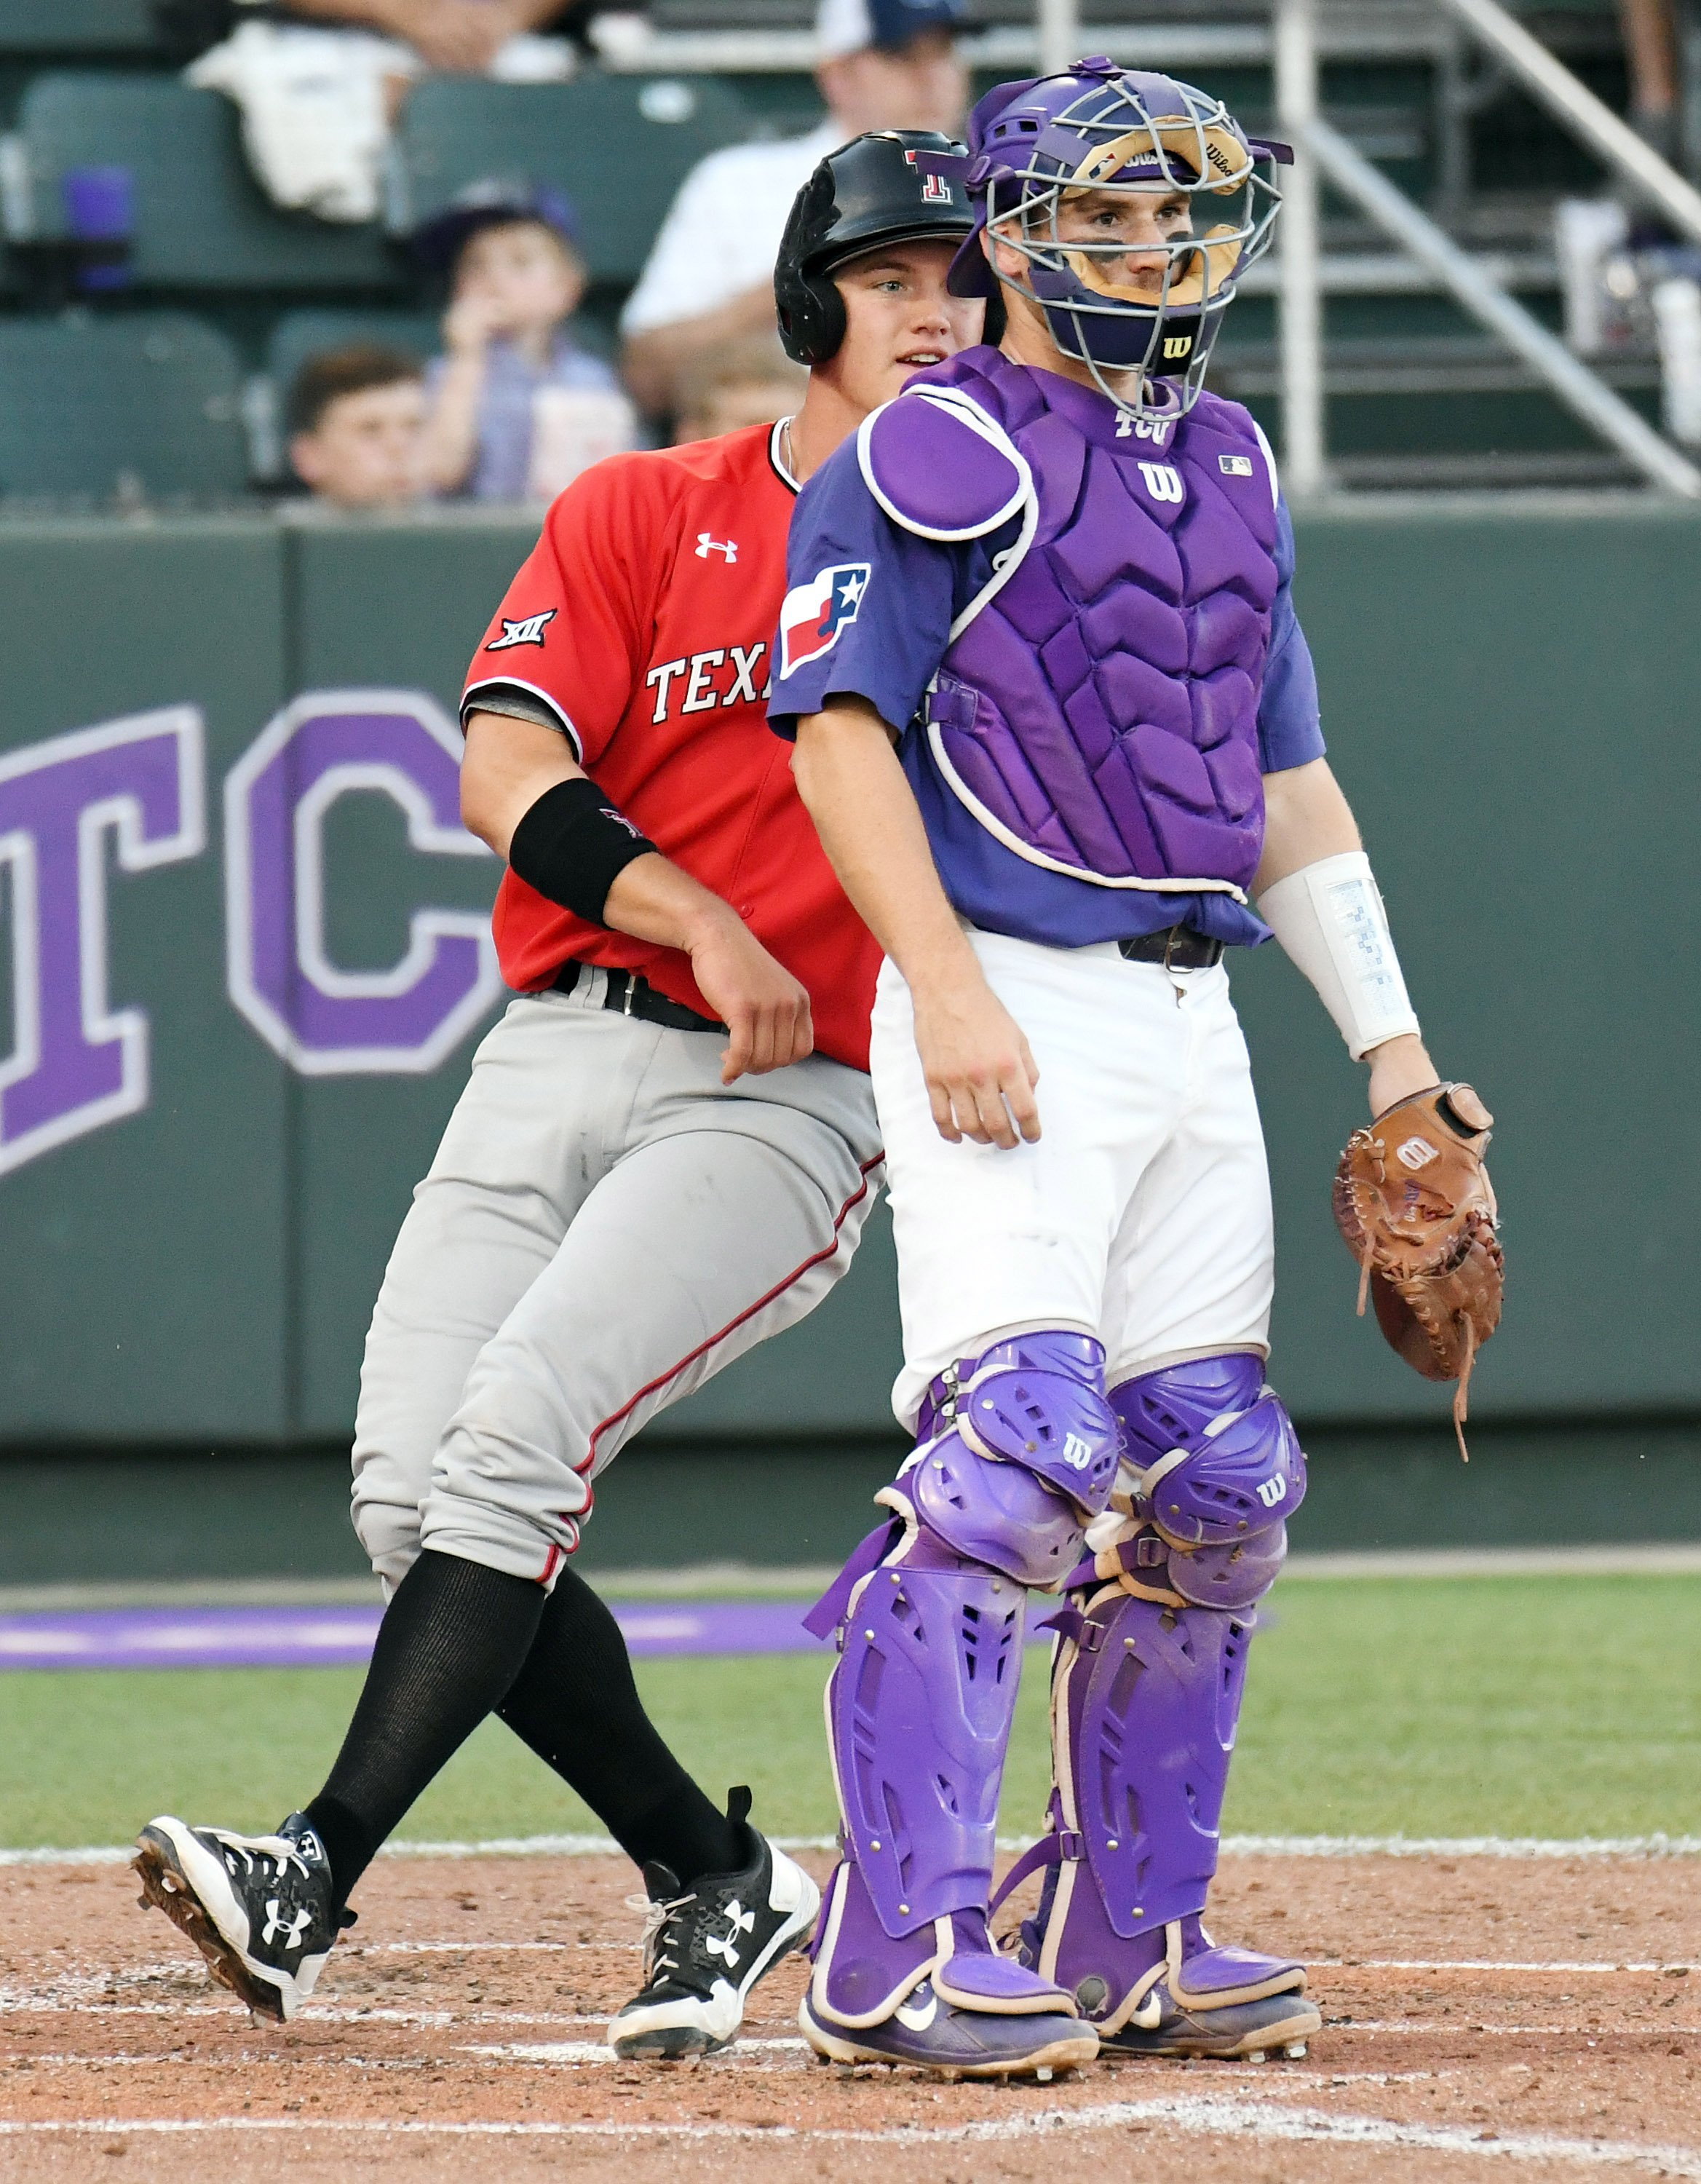 Texas Tech at Texas Christian